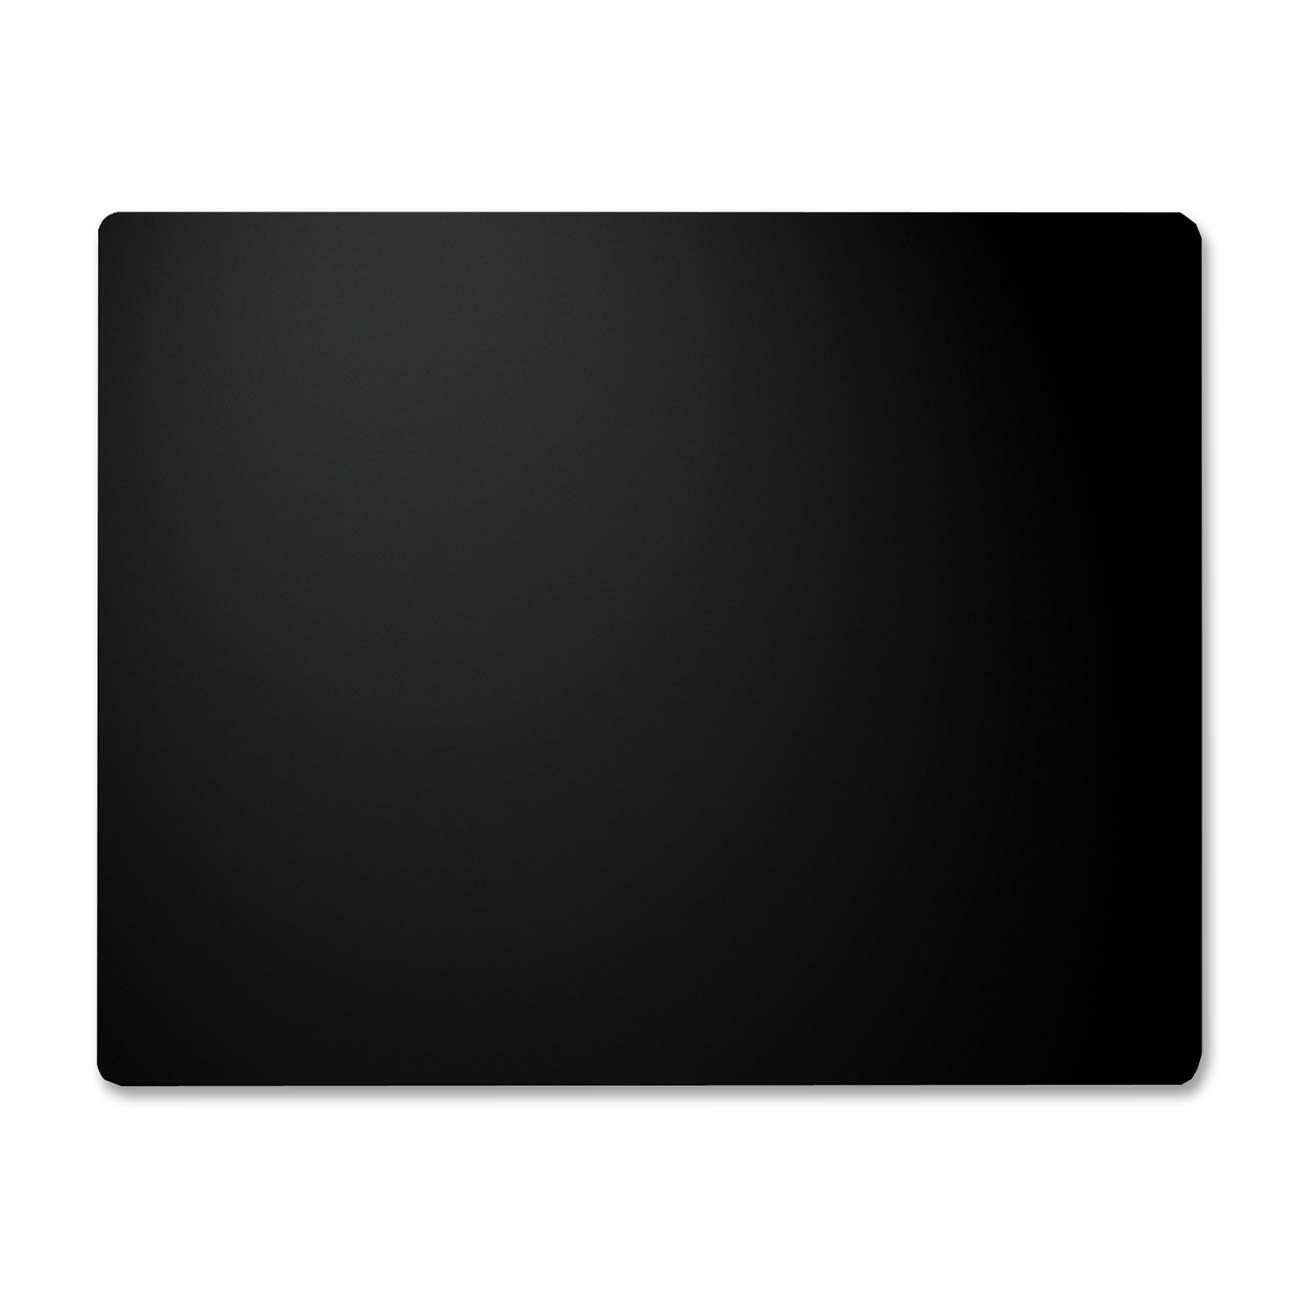 Soft Black Leather Desk Pad Featuring A Non Glare Surface This Is Ideal For Boardrooms Hotel Rooms And Reception Areas